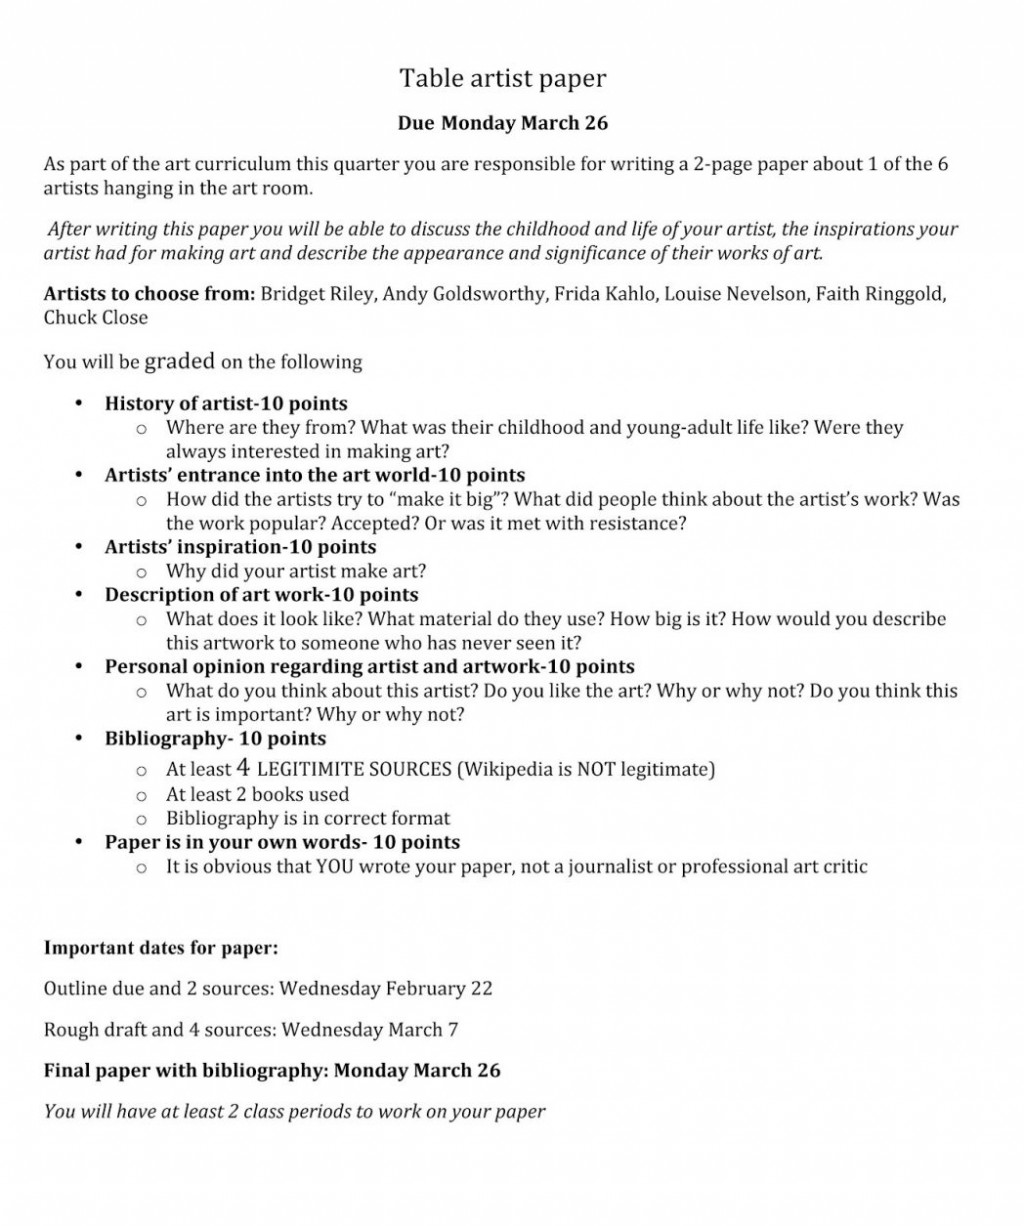 010 Essay Example Laws Of Life Examples Media Role Sample Med School Dive Diversity Medical Essays Samples Admission Secondary Application Scholarship Impressive 2012 Large